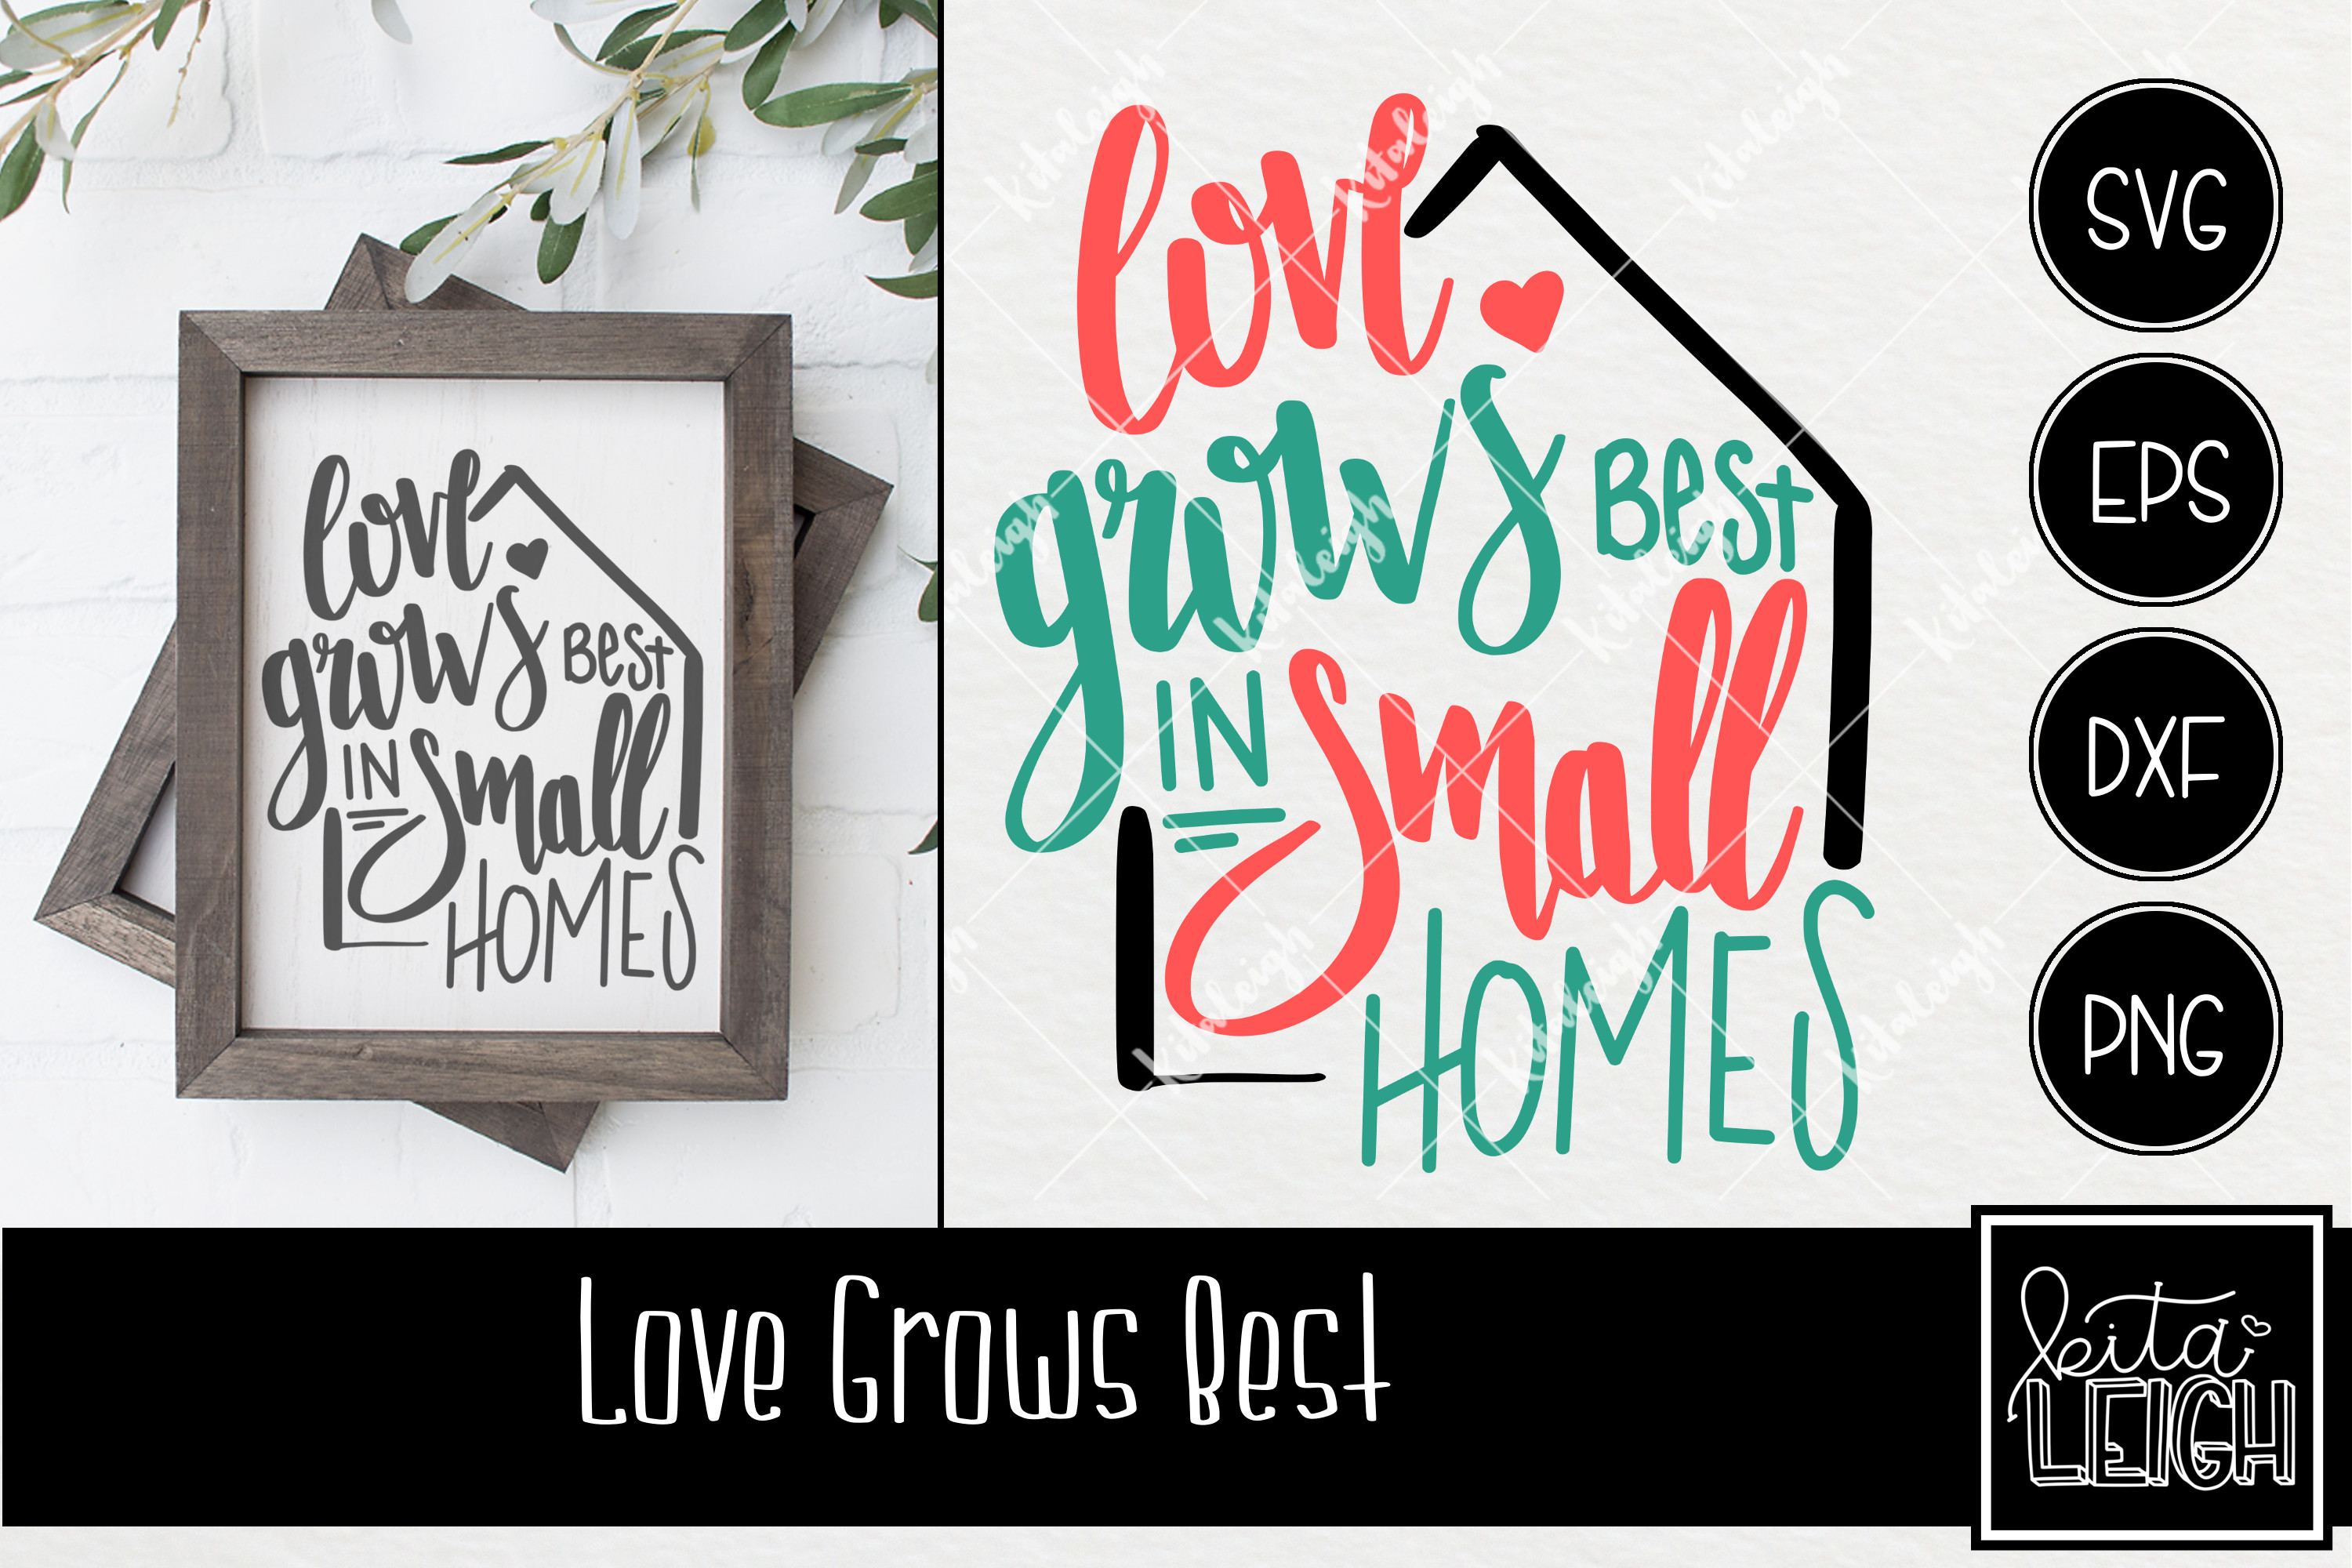 Love Grows Best In Small Homes Hand Lettered